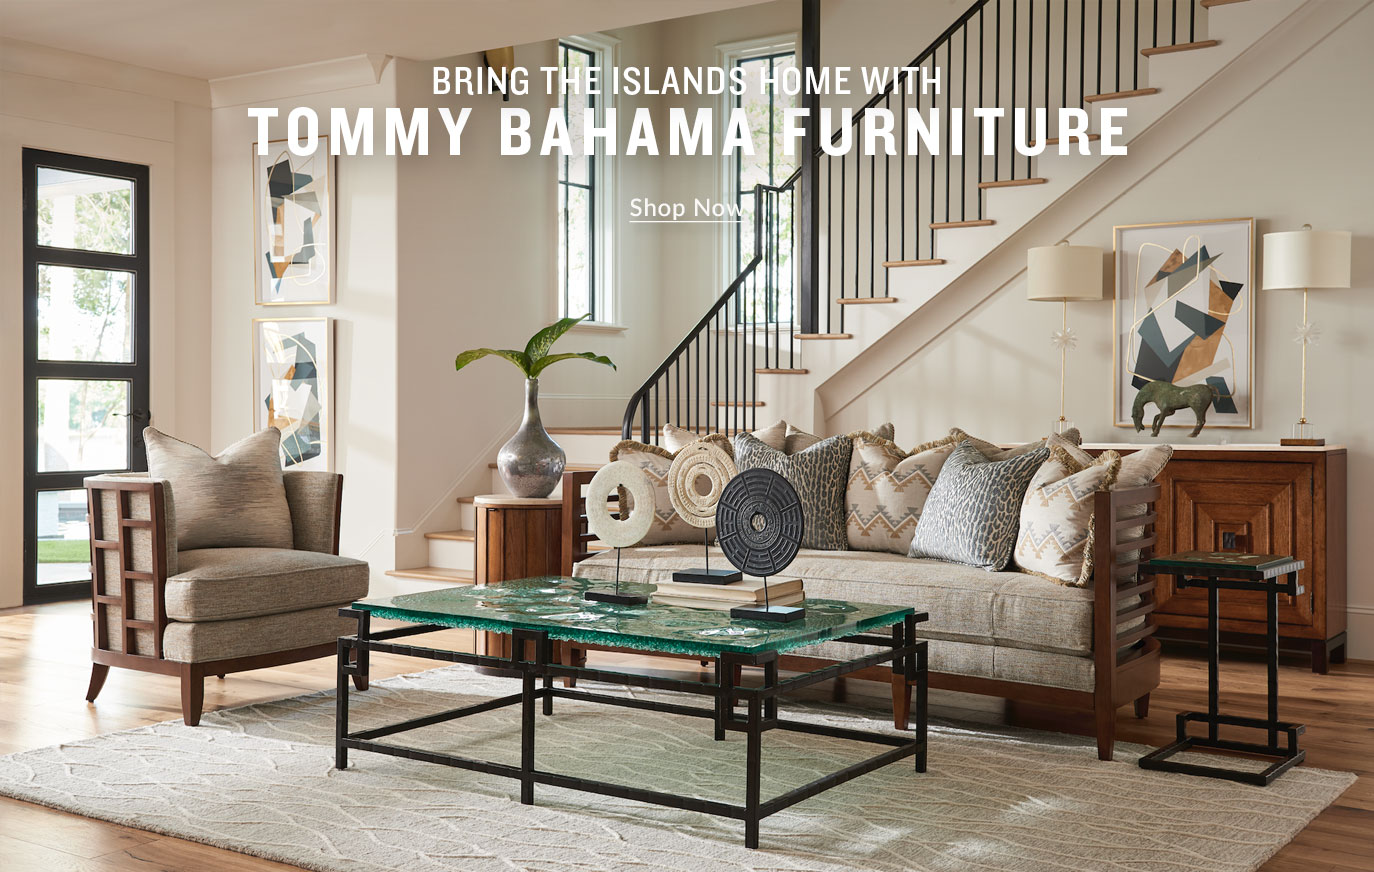 Bring The Islands Home With Tommy Bahama Furniture